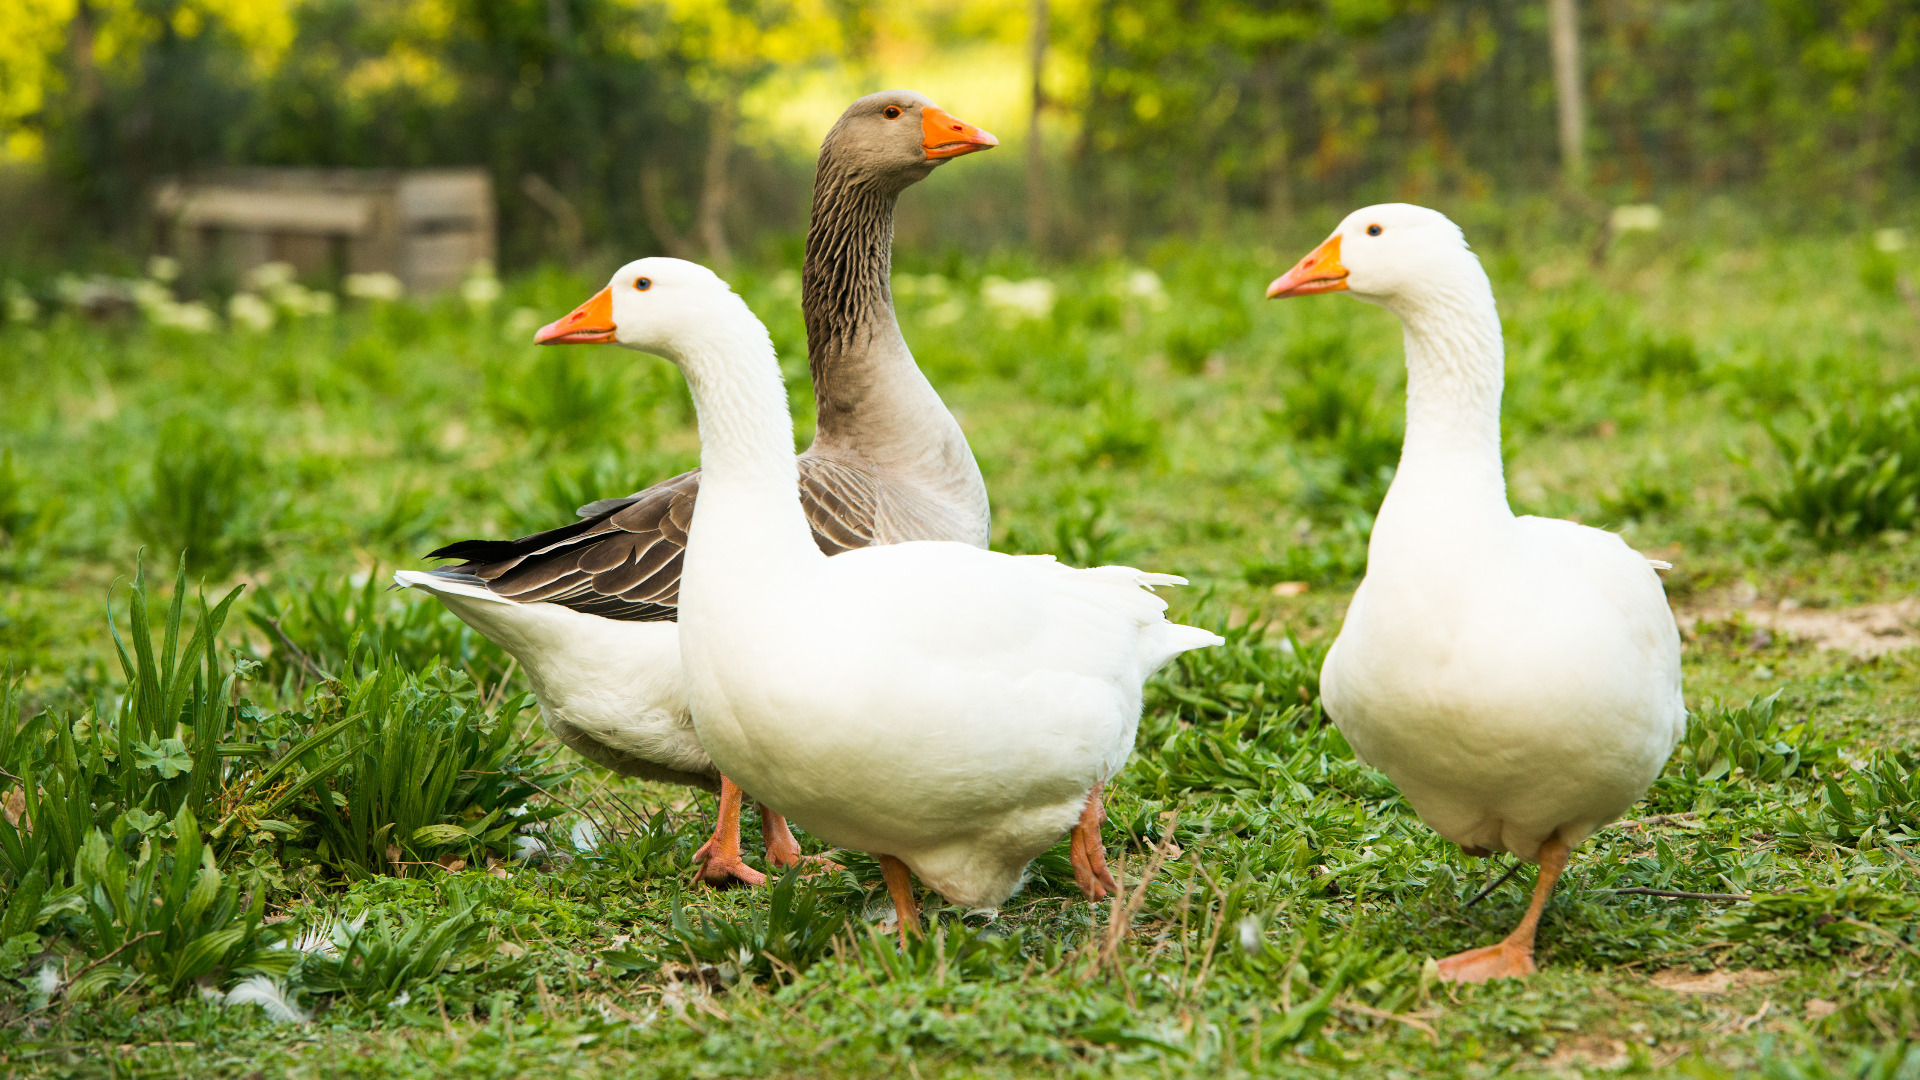 Geese outside in a field